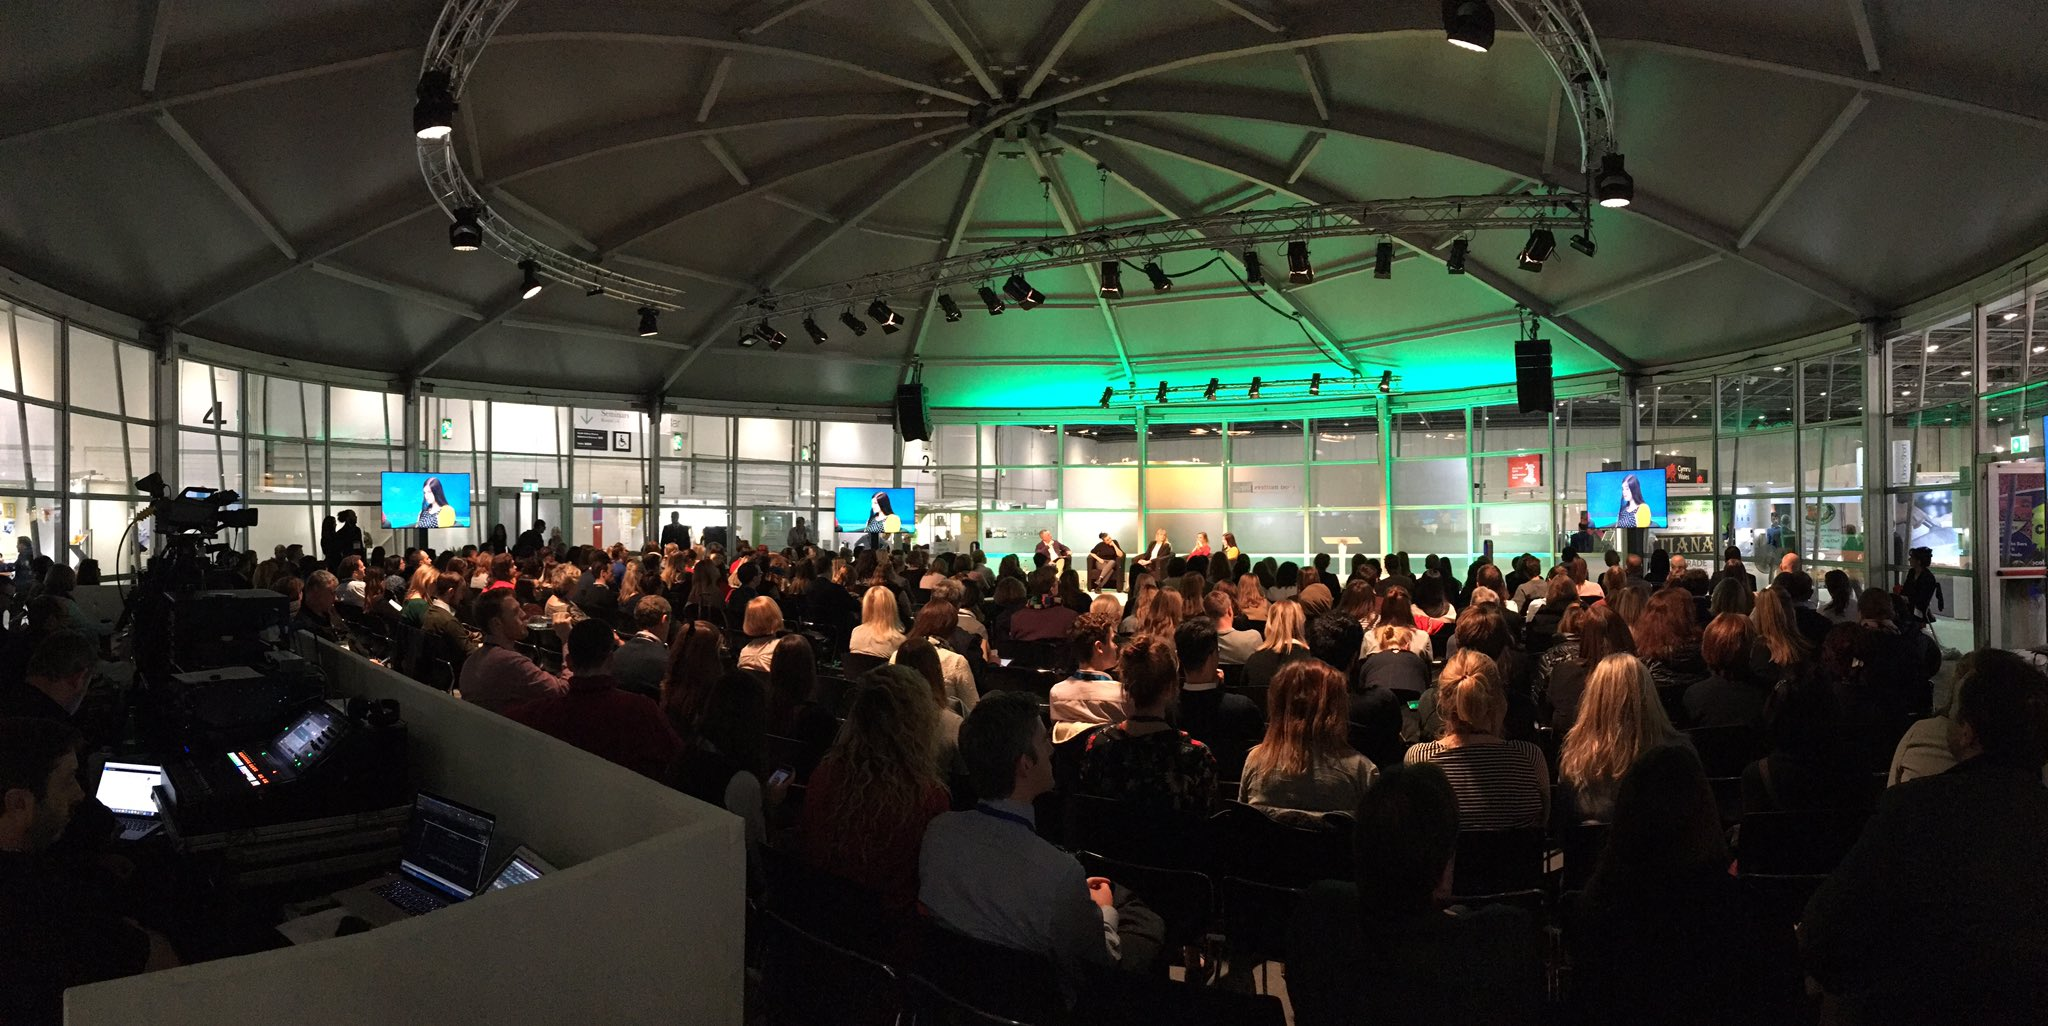 Discussing 'post-truth' nutrition media messages amongst other things in a full house @FoodMattersLive #foodmatters https://t.co/6xdEt3lsAy